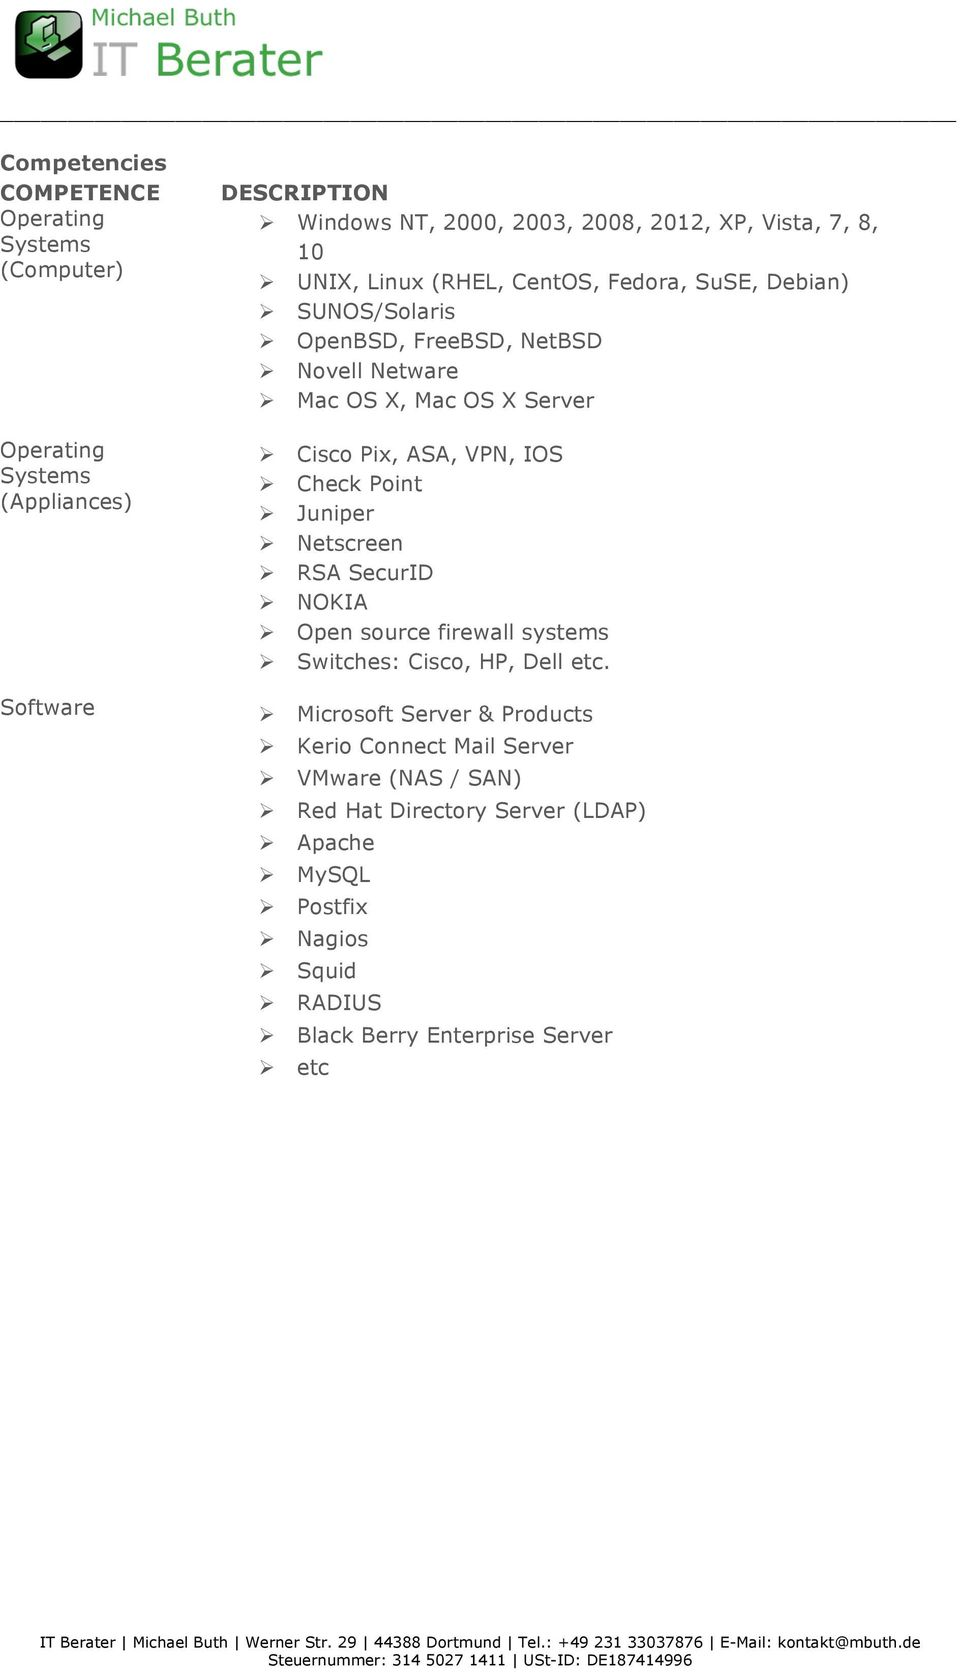 IOS Ø Check Point Ø Juniper Ø Netscreen Ø RSA SecurID Ø NOKIA Ø Open source firewall systems Ø Switches: Cisco, HP, Dell etc.